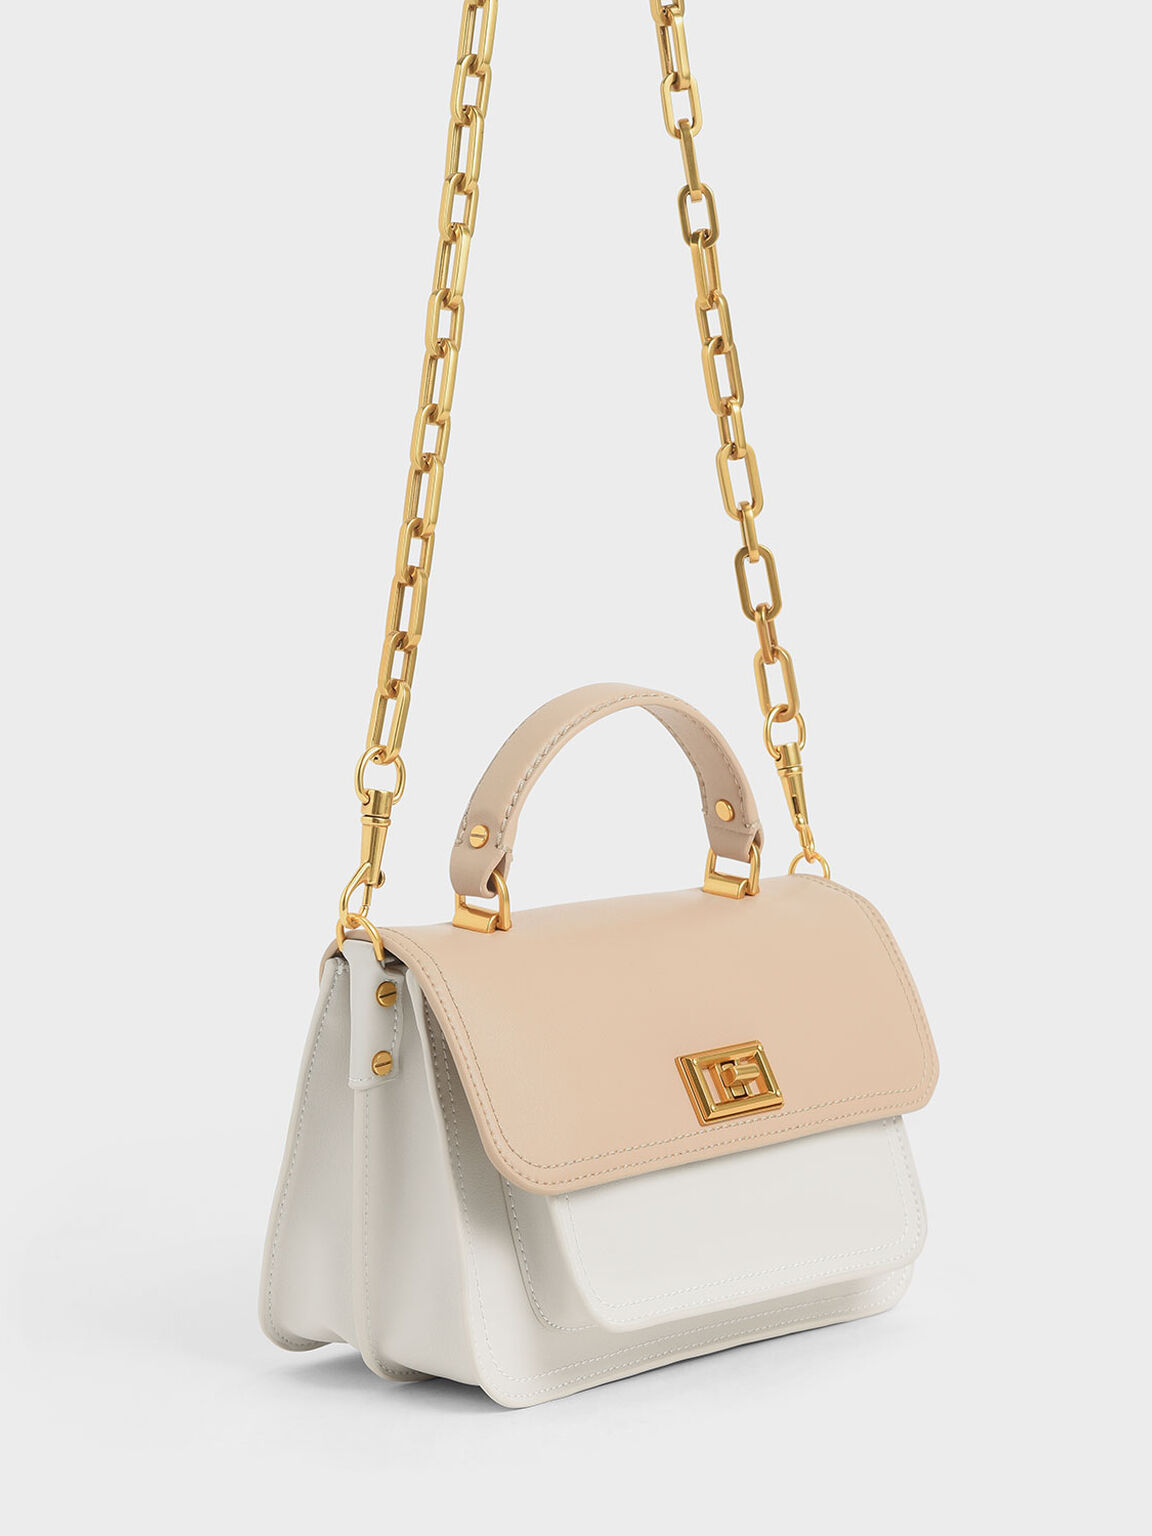 Two-Tone Handbag, Multi, hi-res